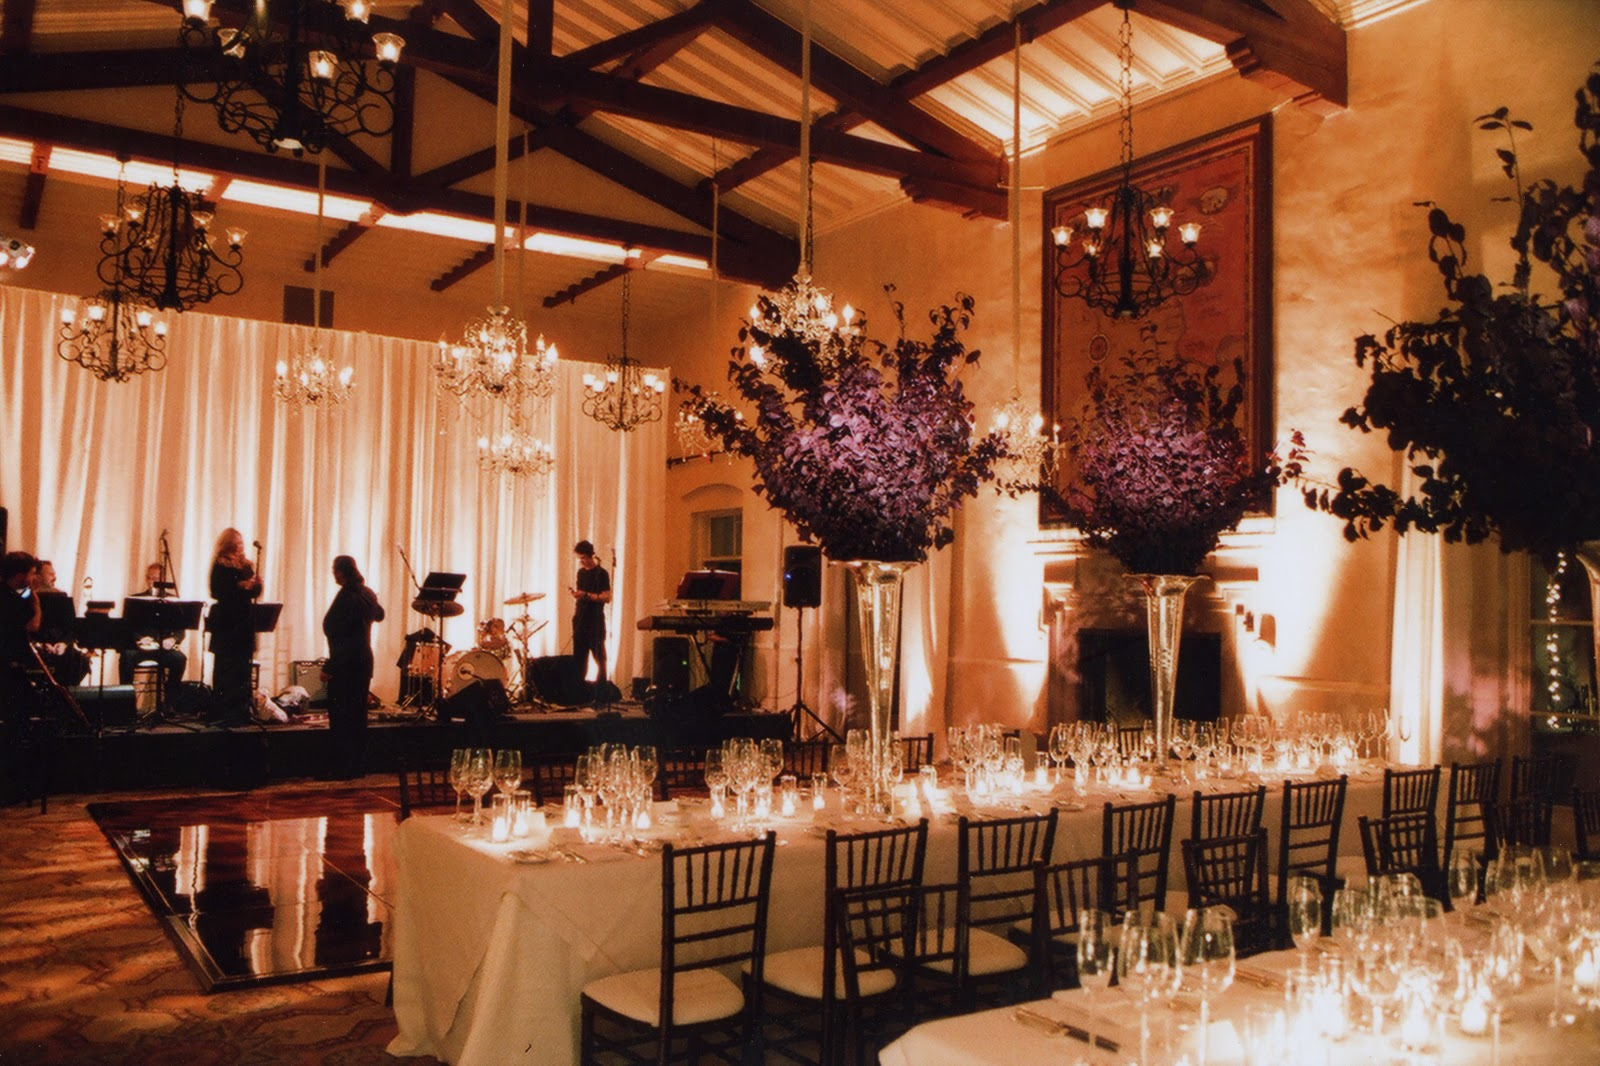 Gianna company bel air bay club elegant wedding gianna company bel air bay club wedding aloadofball Image collections